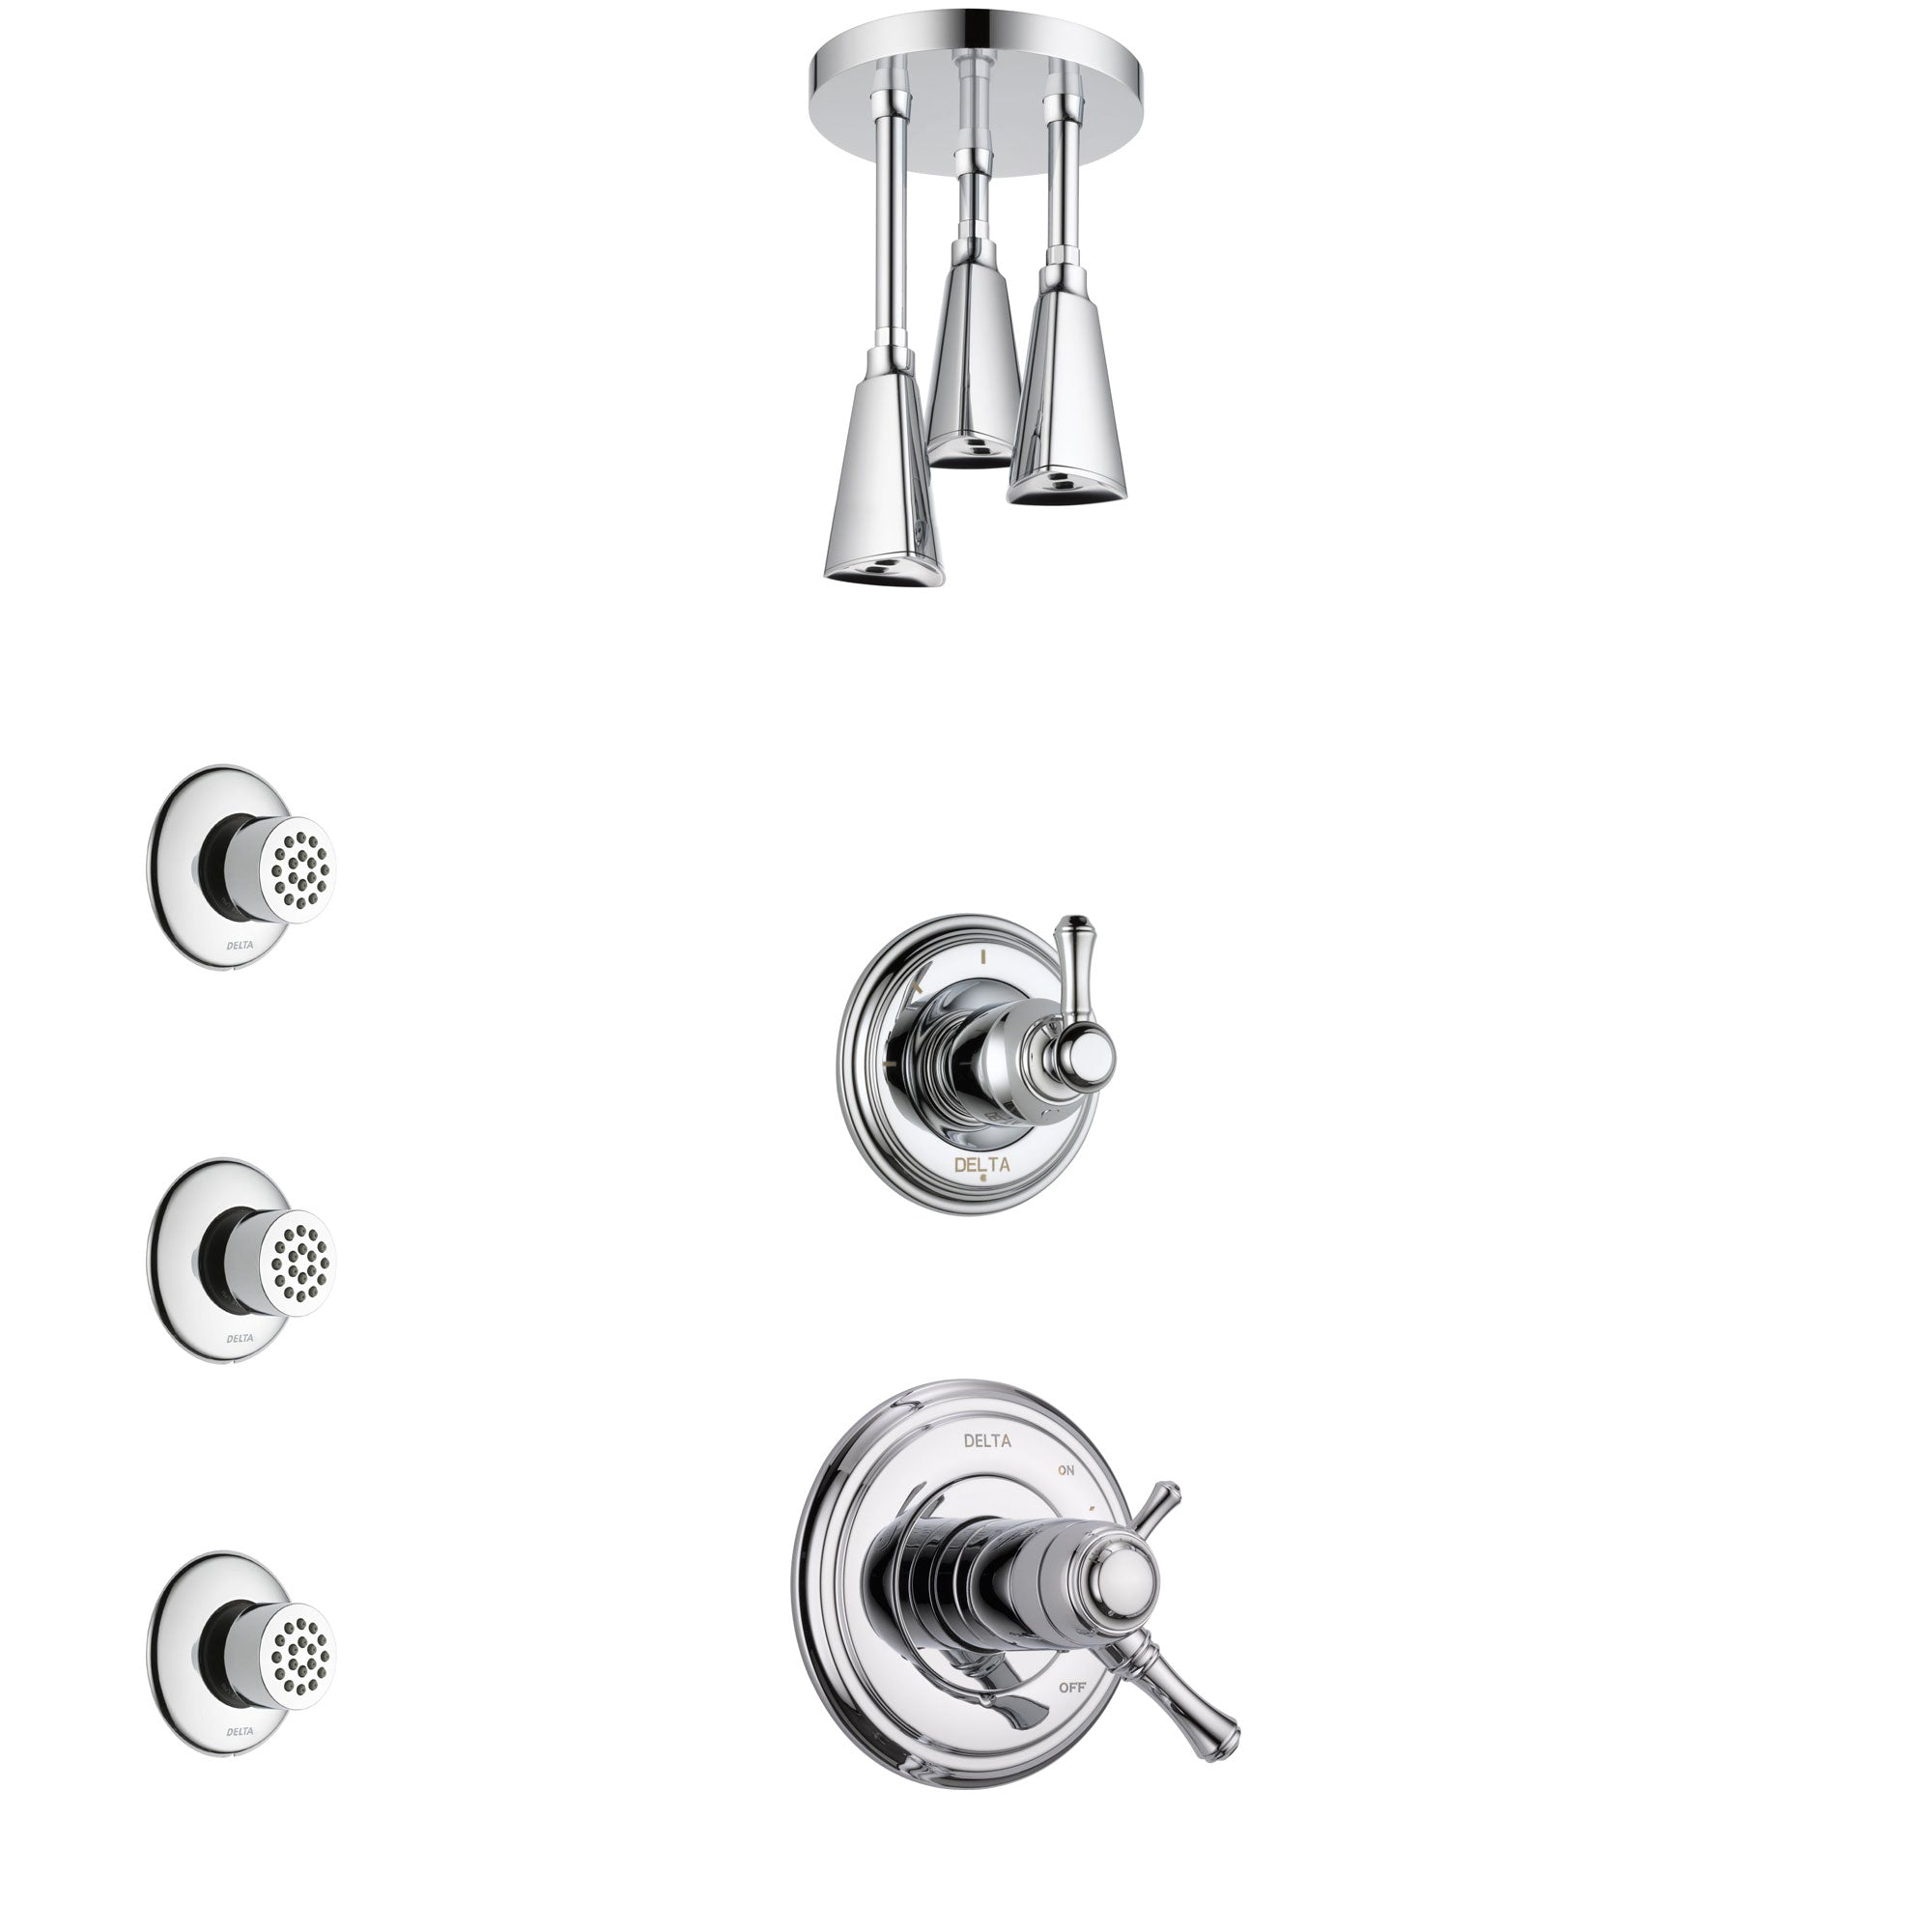 Delta Cassidy Chrome Finish Shower System with Dual Thermostatic Control Handle, Diverter, Ceiling Mount Showerhead, and 3 Body Sprays SS17T9726